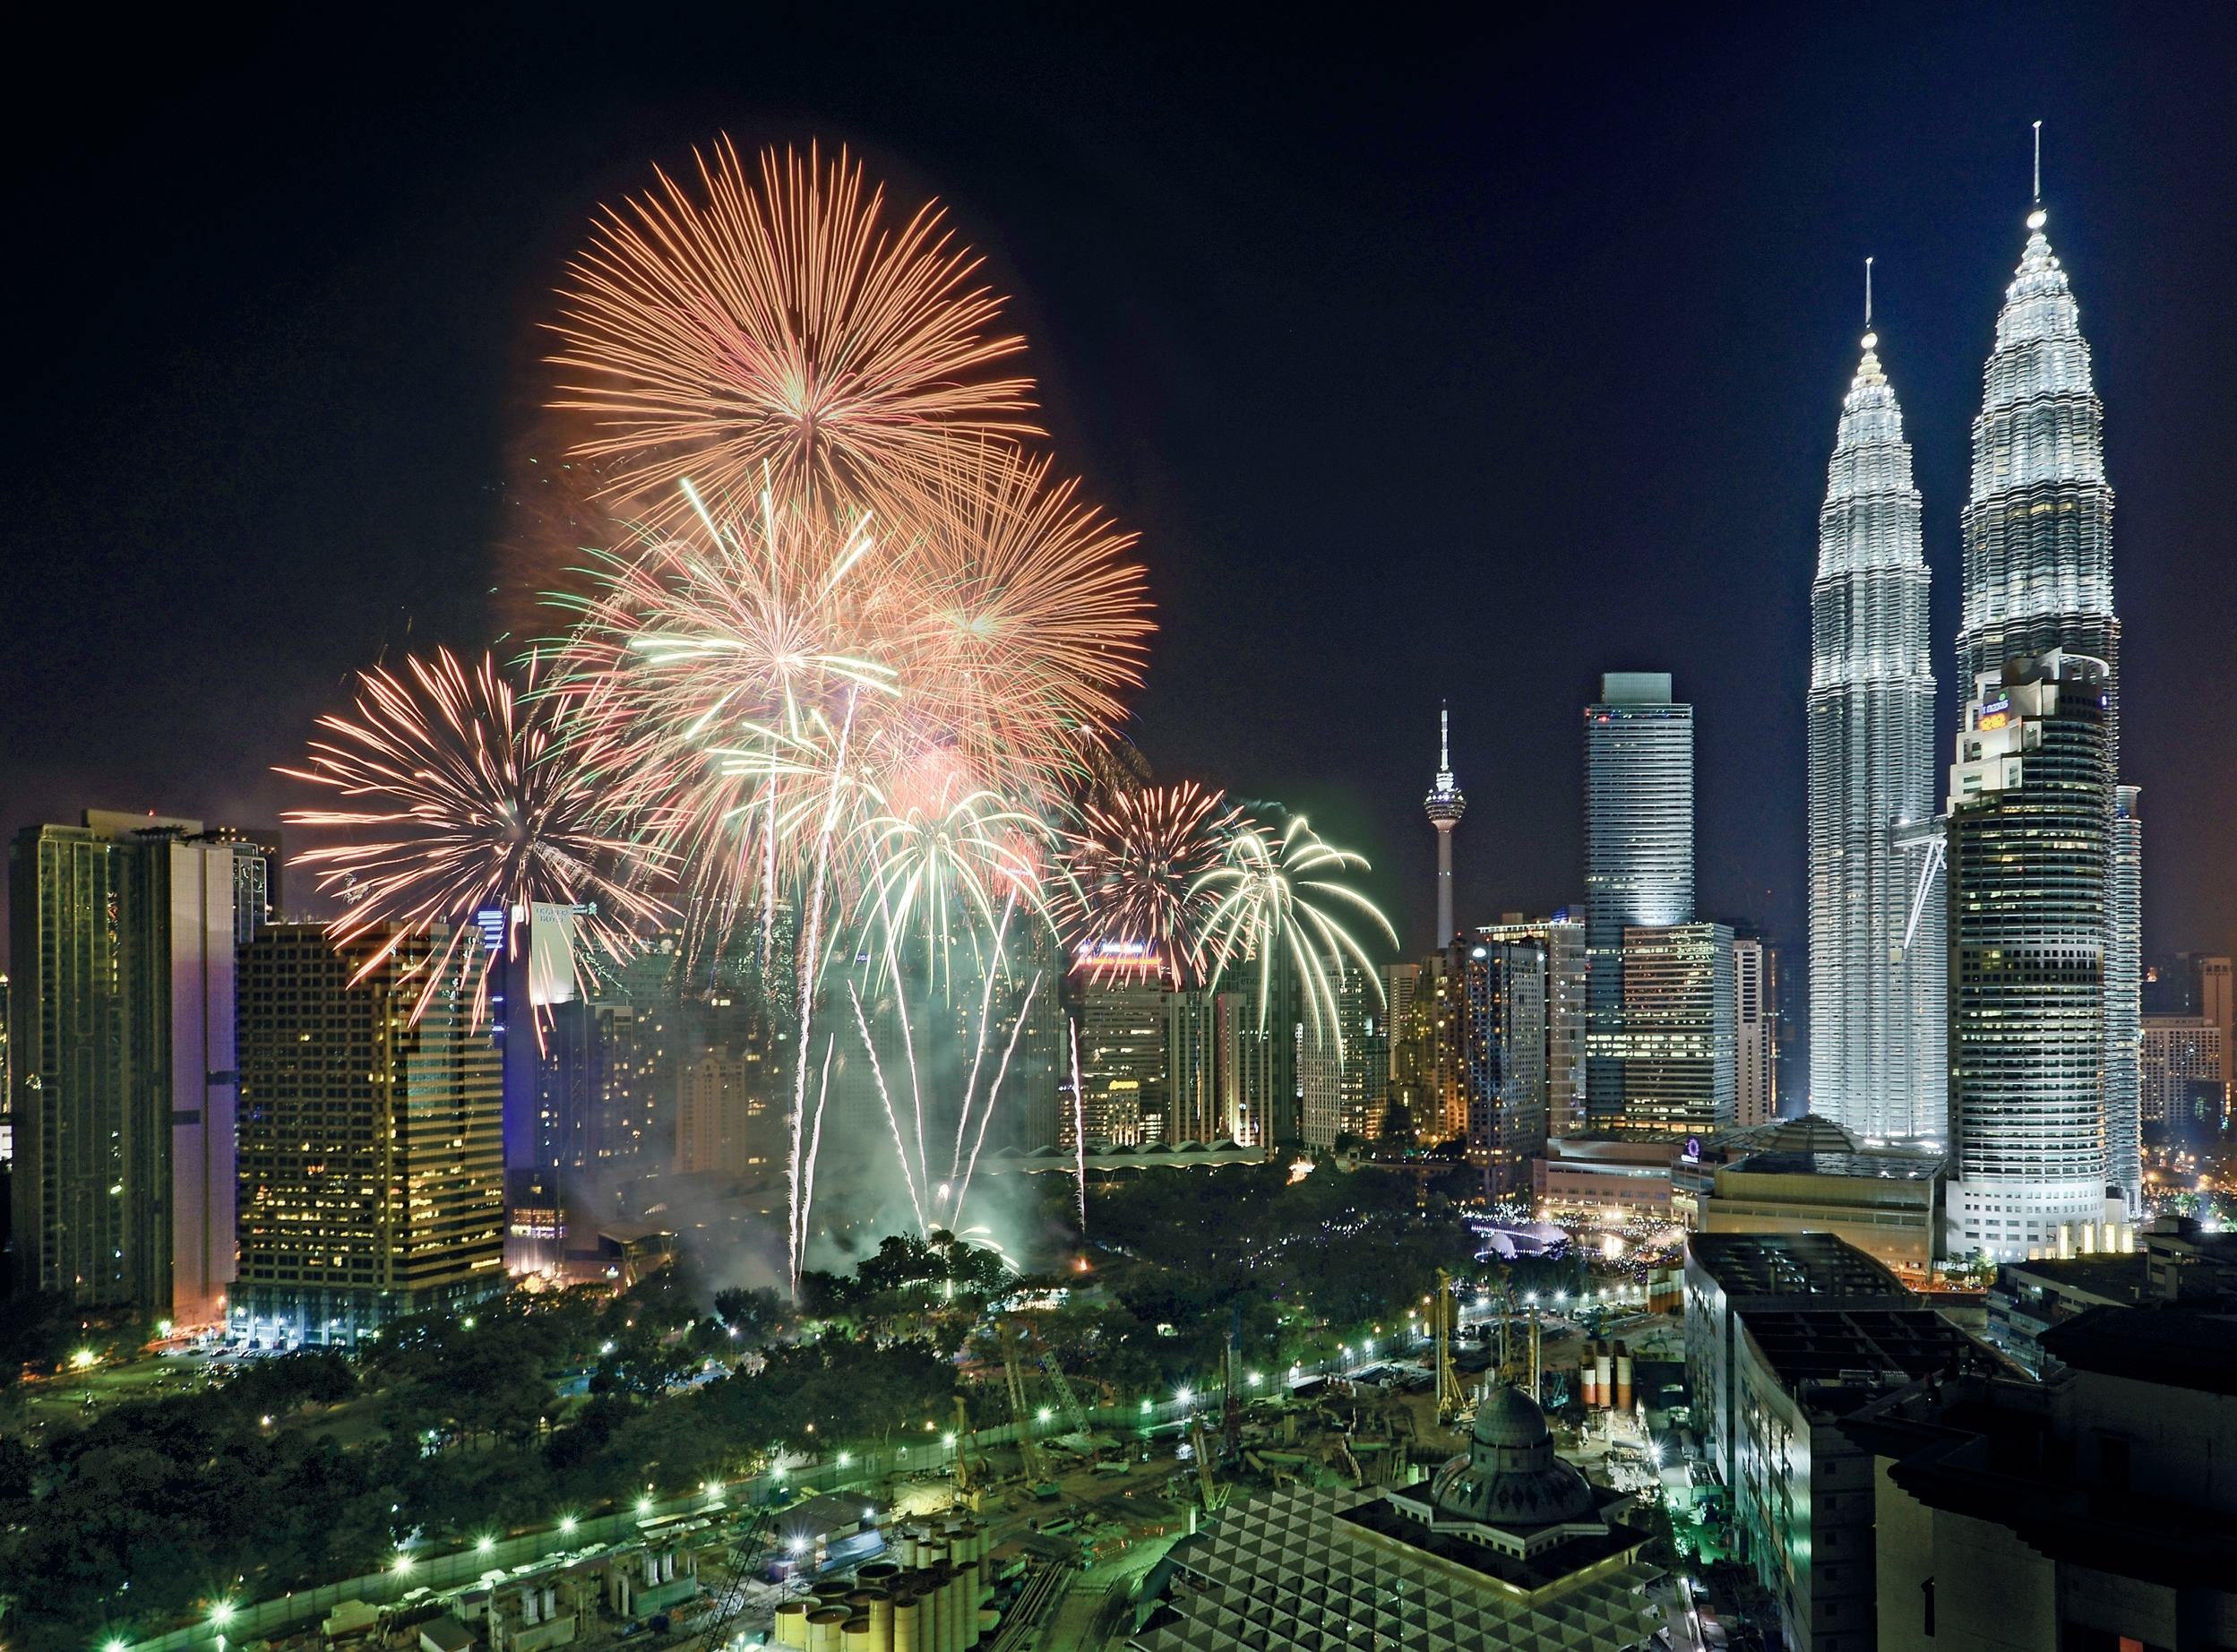 The Best Bars To Watch Fireworks In Kl